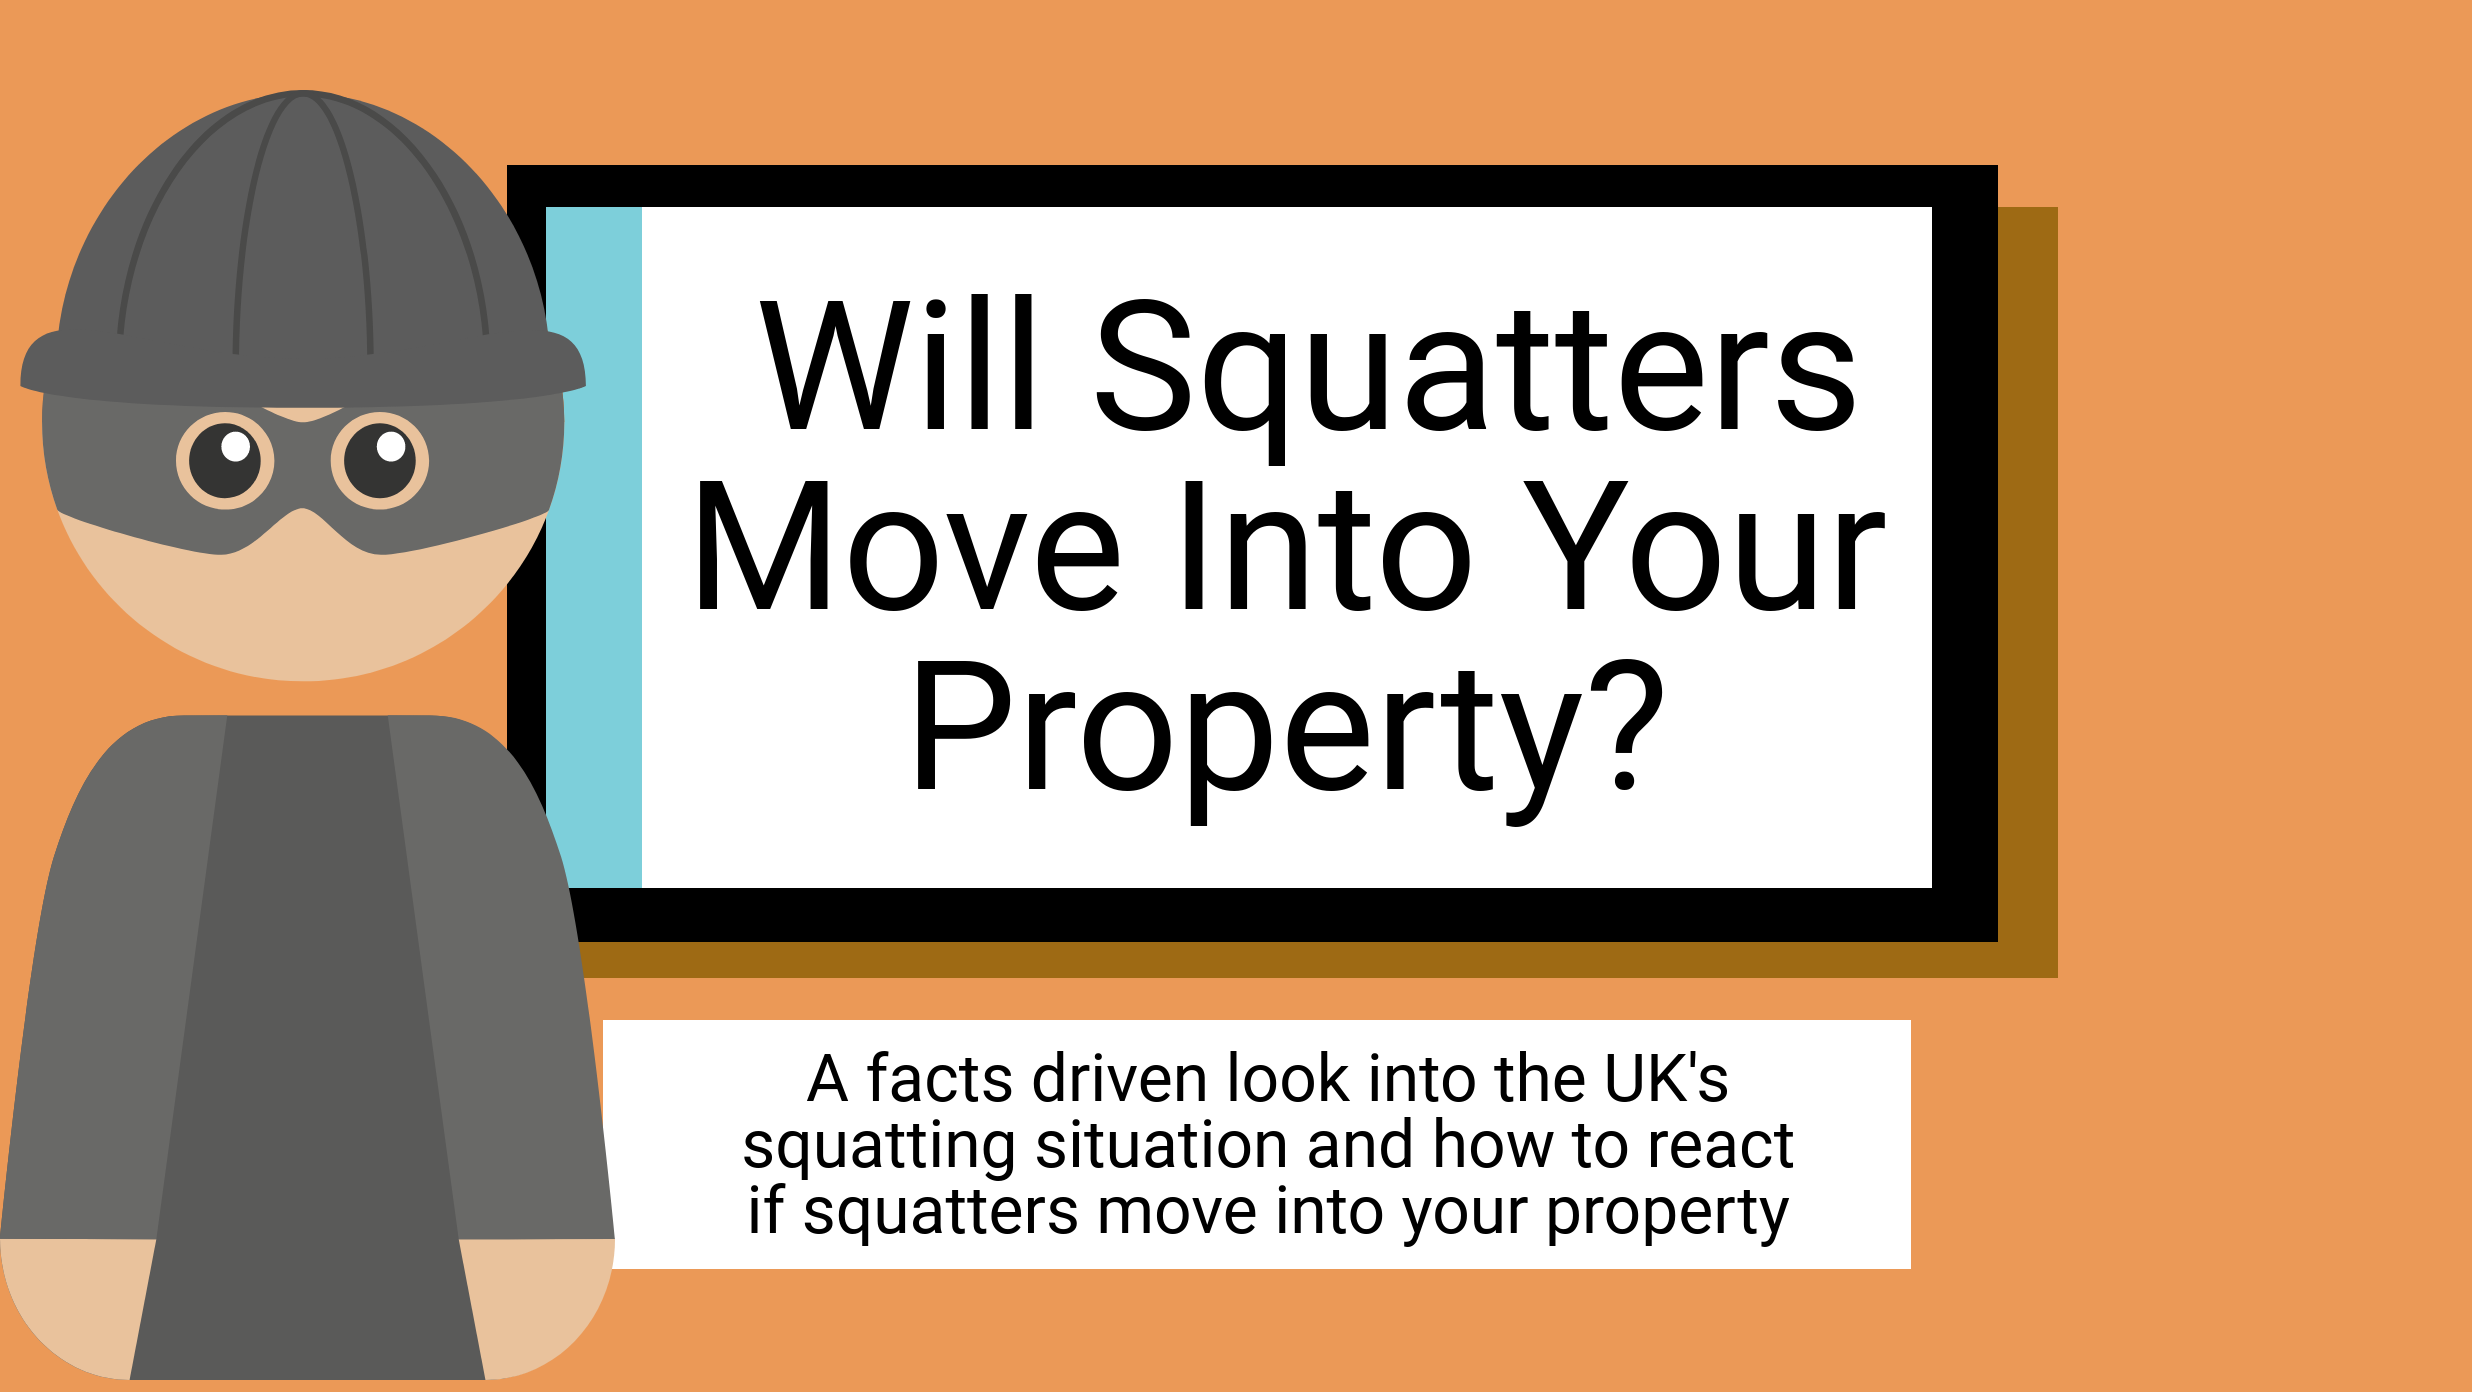 Will squatters move into your property?